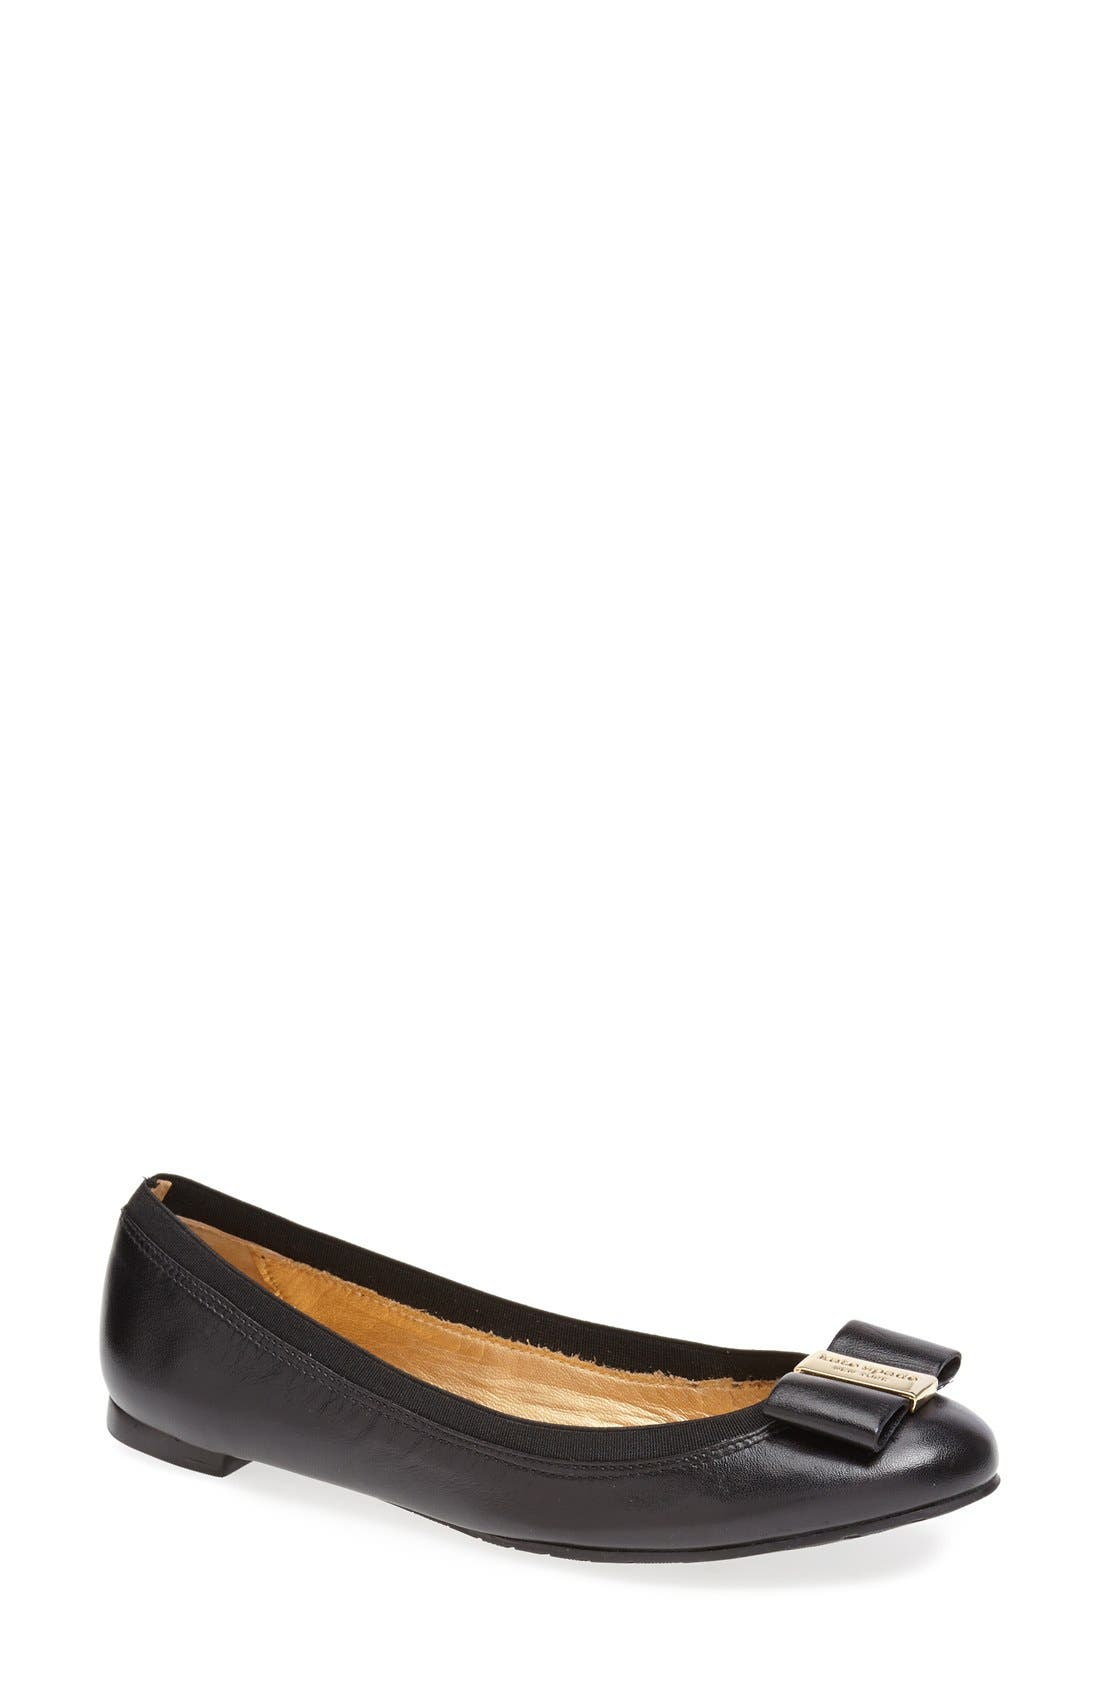 Main Image - kate spade new york 'tock' flat